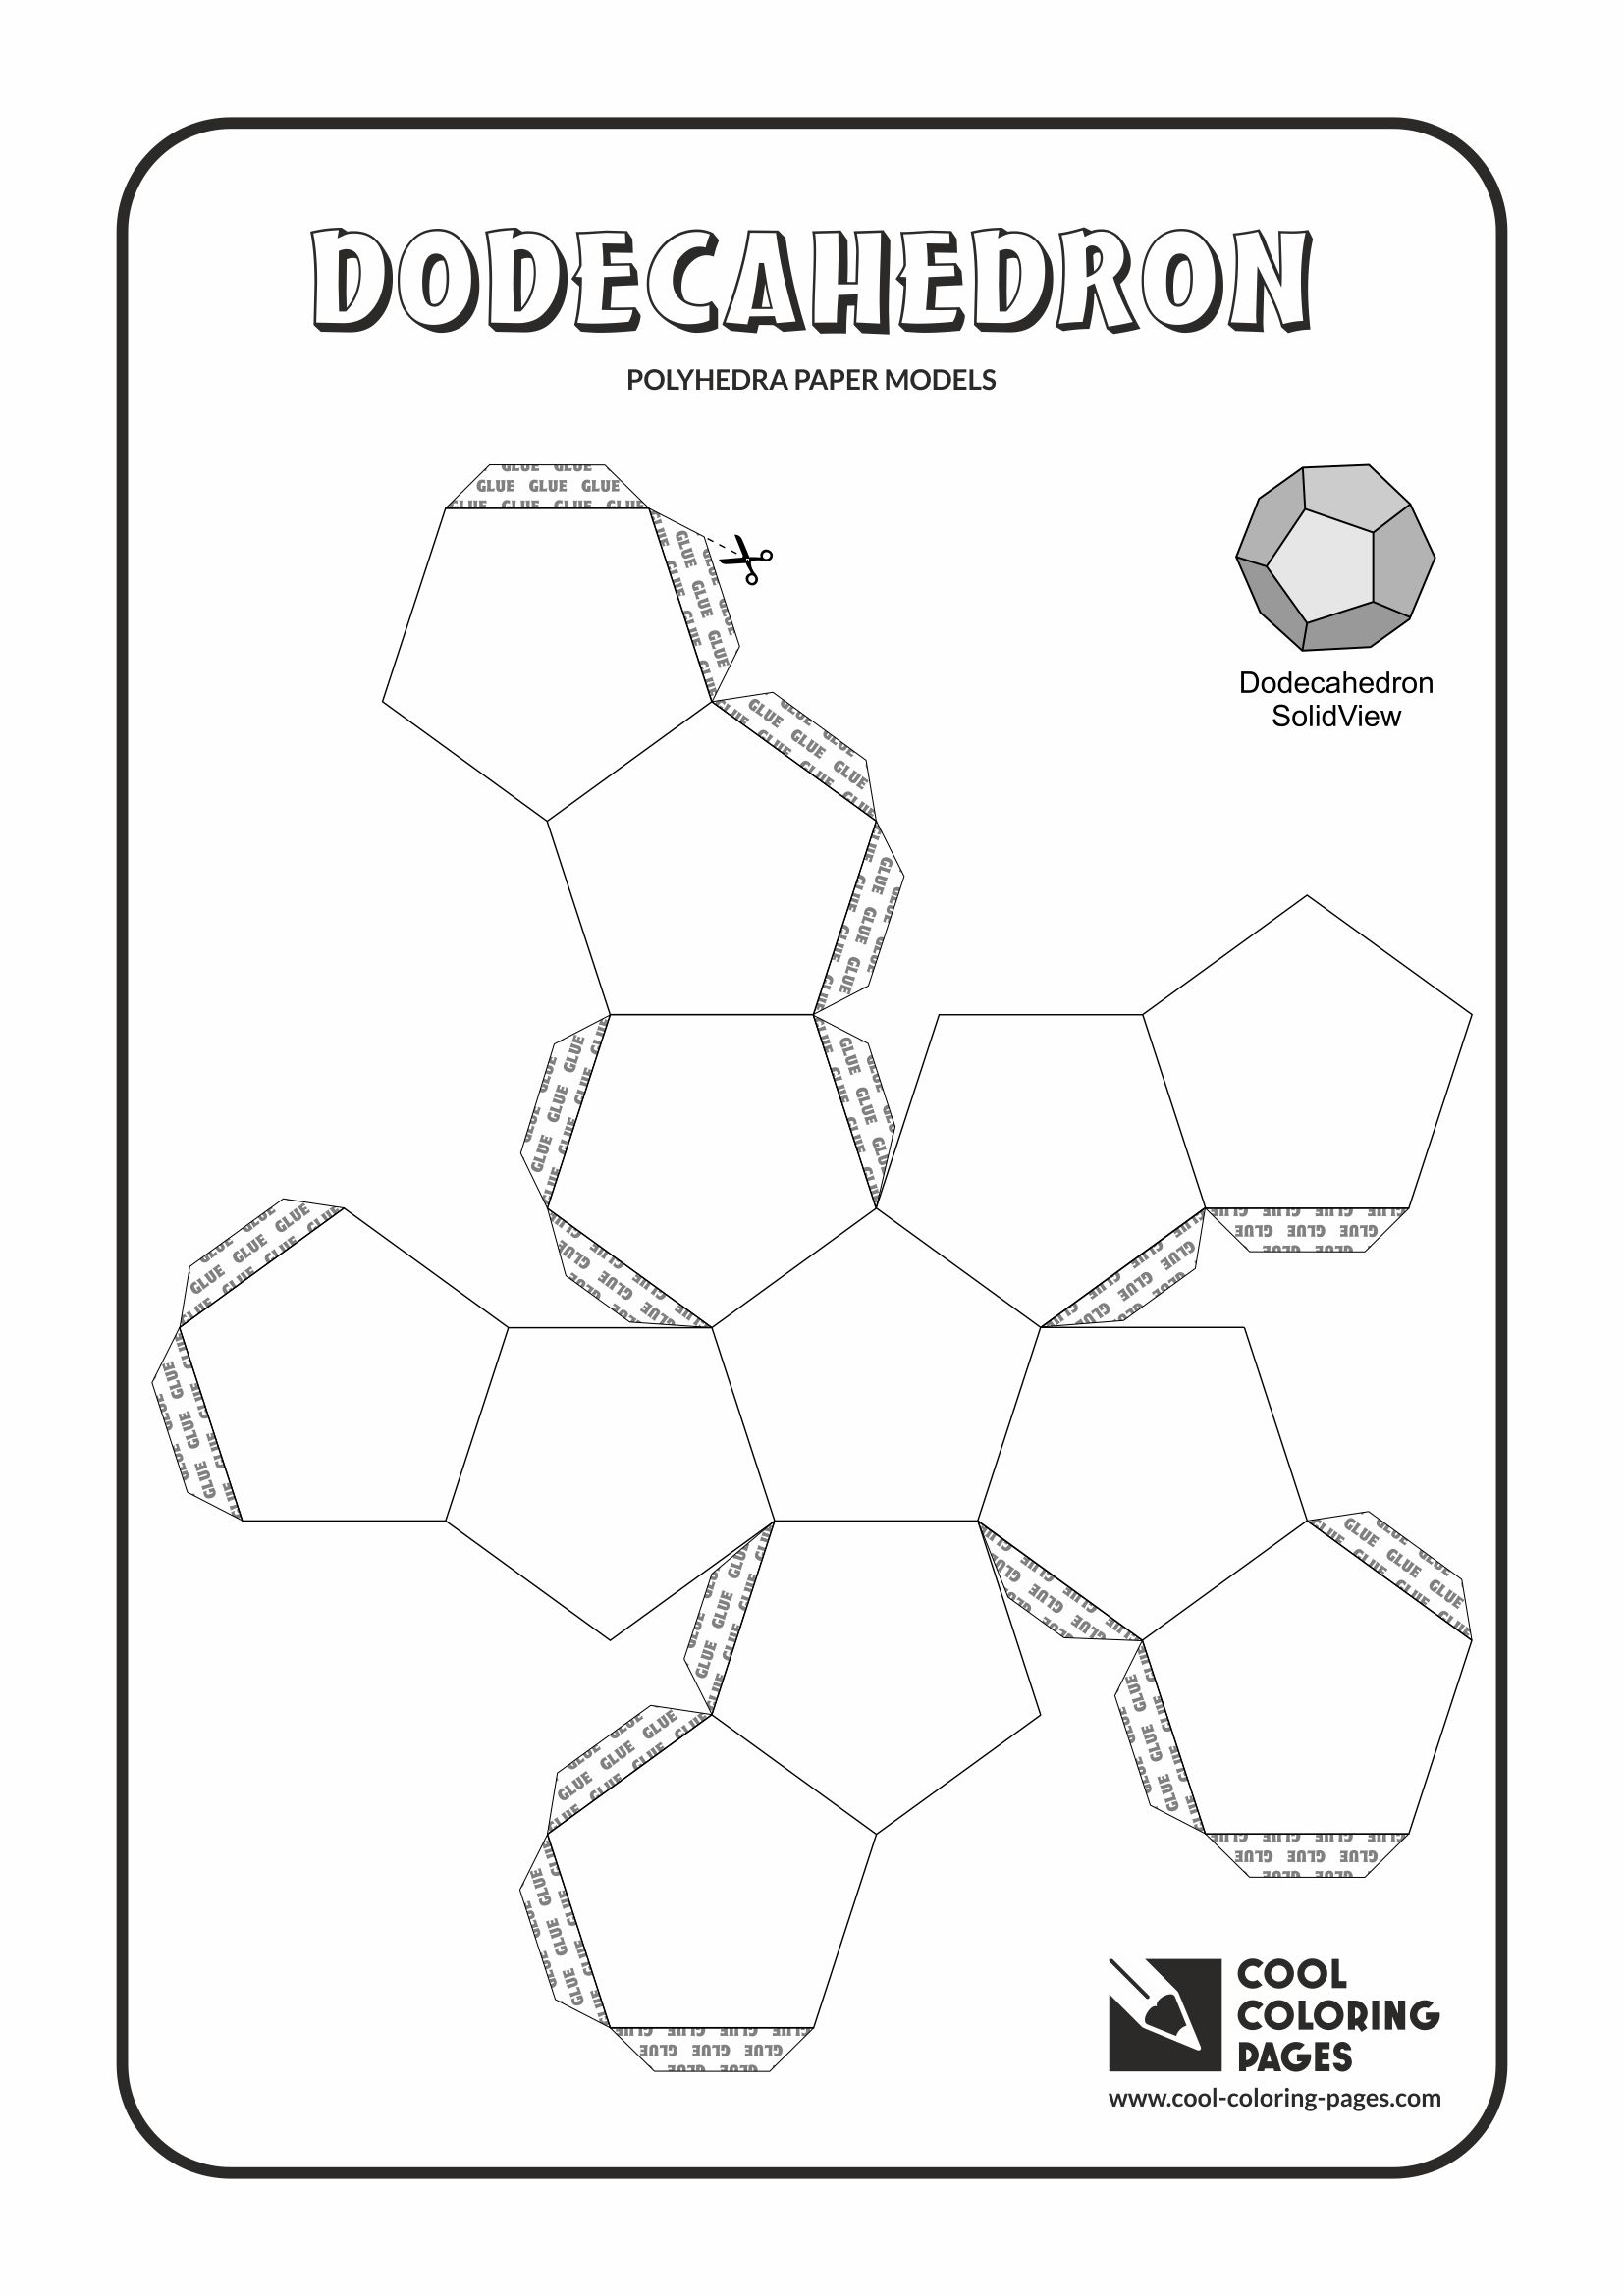 Cool Coloring Pages - Paper models of polyhedra / Paper solids models / Dodecahedron